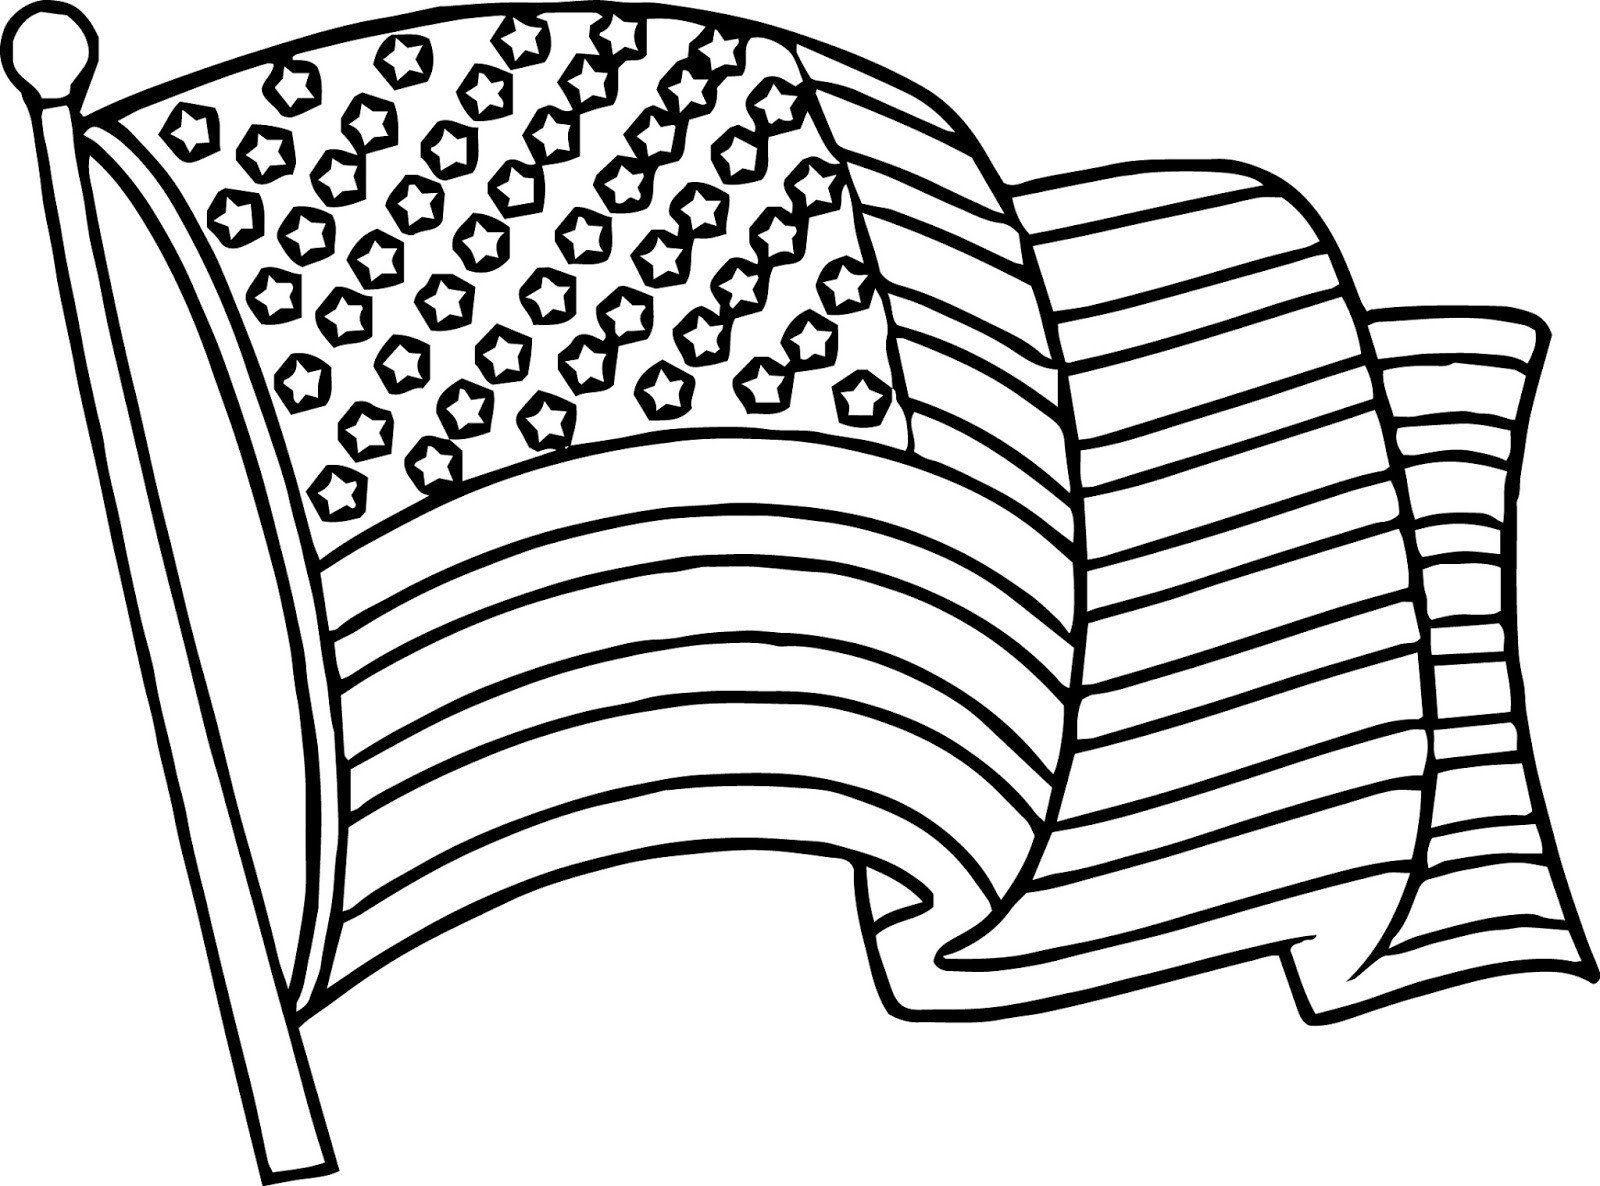 American Flag Coloring Page Inspirational Coloring China Flag